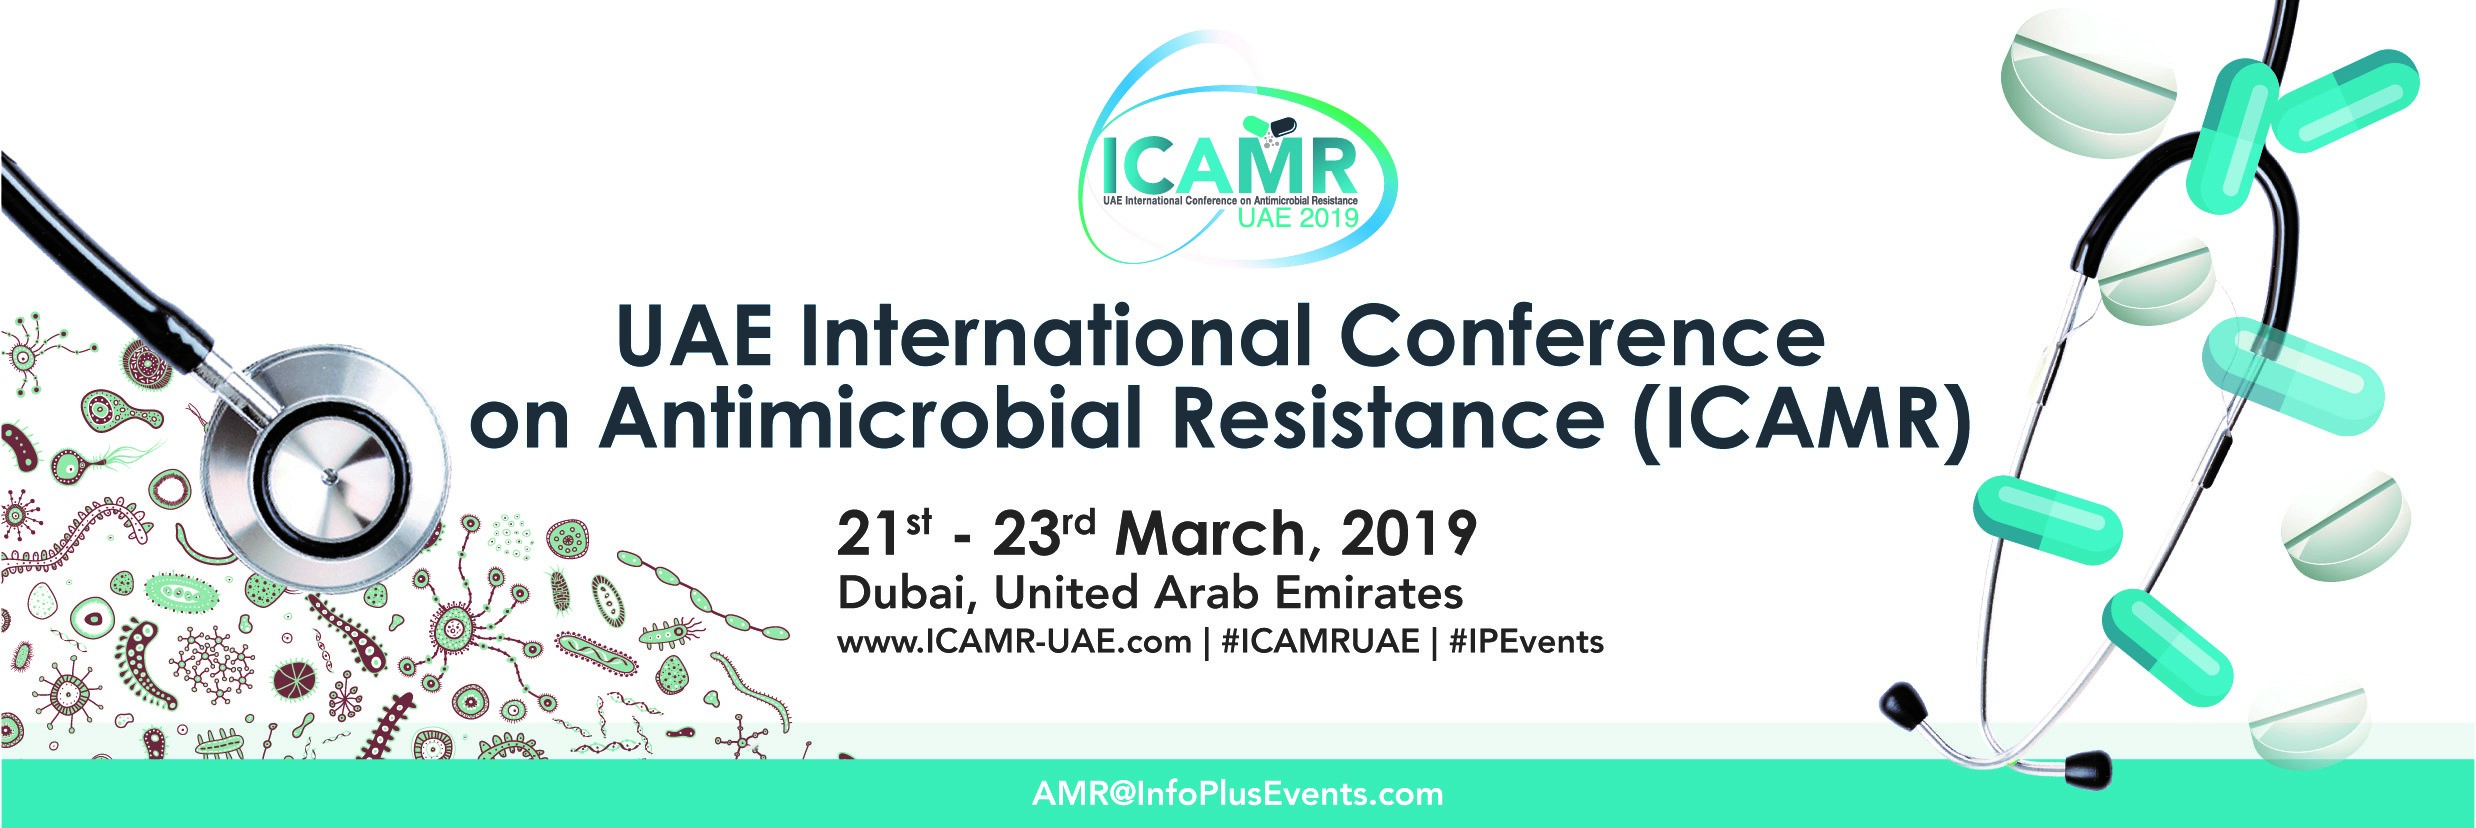 UAE International Conference on Antimicrobial Resistance (ICAMR) 21st & 23rd March,2019